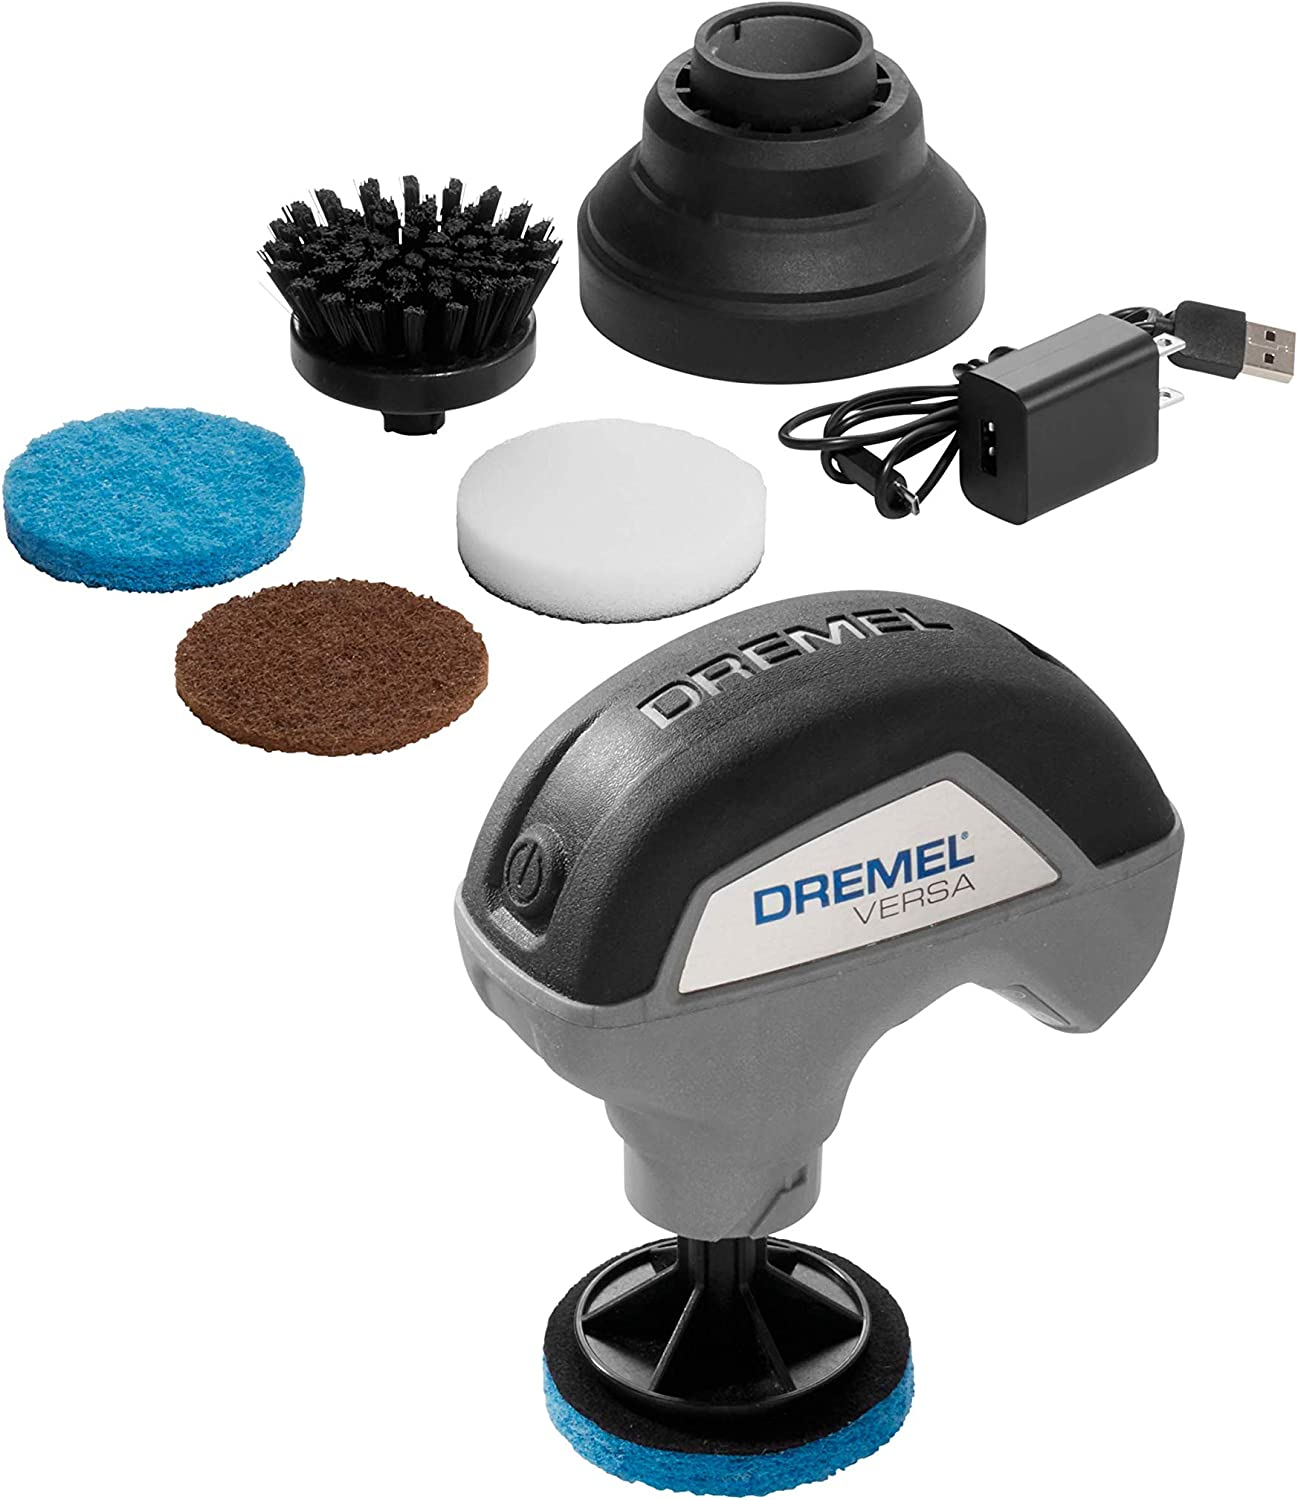 Dremel Versa Cleaning Tool- Grout Brush- Bathroom Shower Scrub- Kitchen & Bathtub Cleaner- Power Scrubber for Tile, Pans, Stoves, Tubs, Sinks Auto, Grills- PC10-02